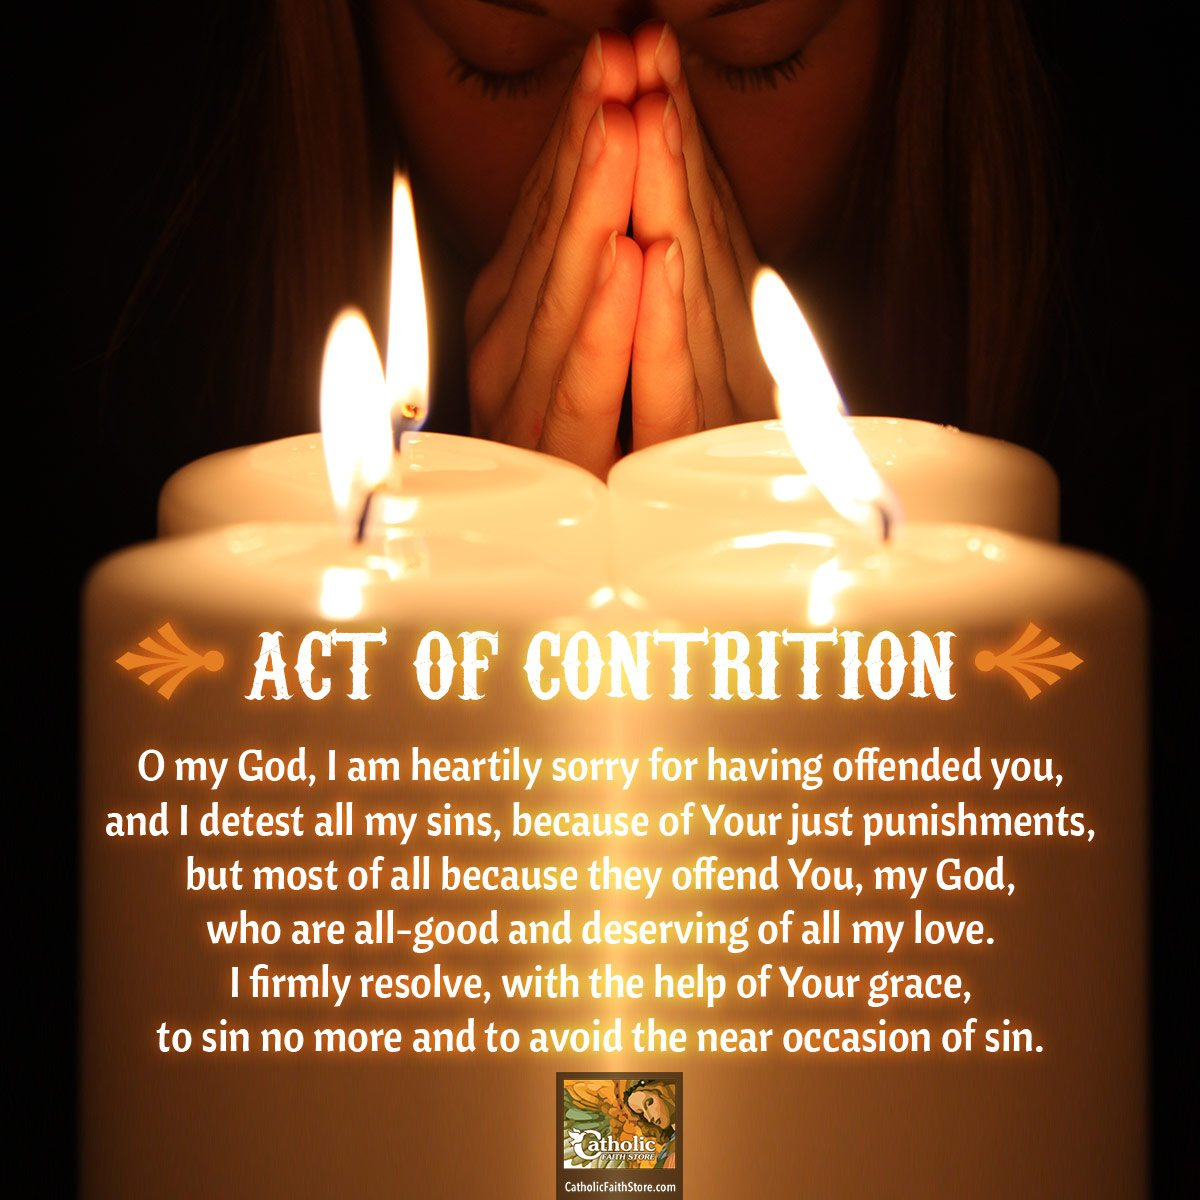 The Act Of Contrition